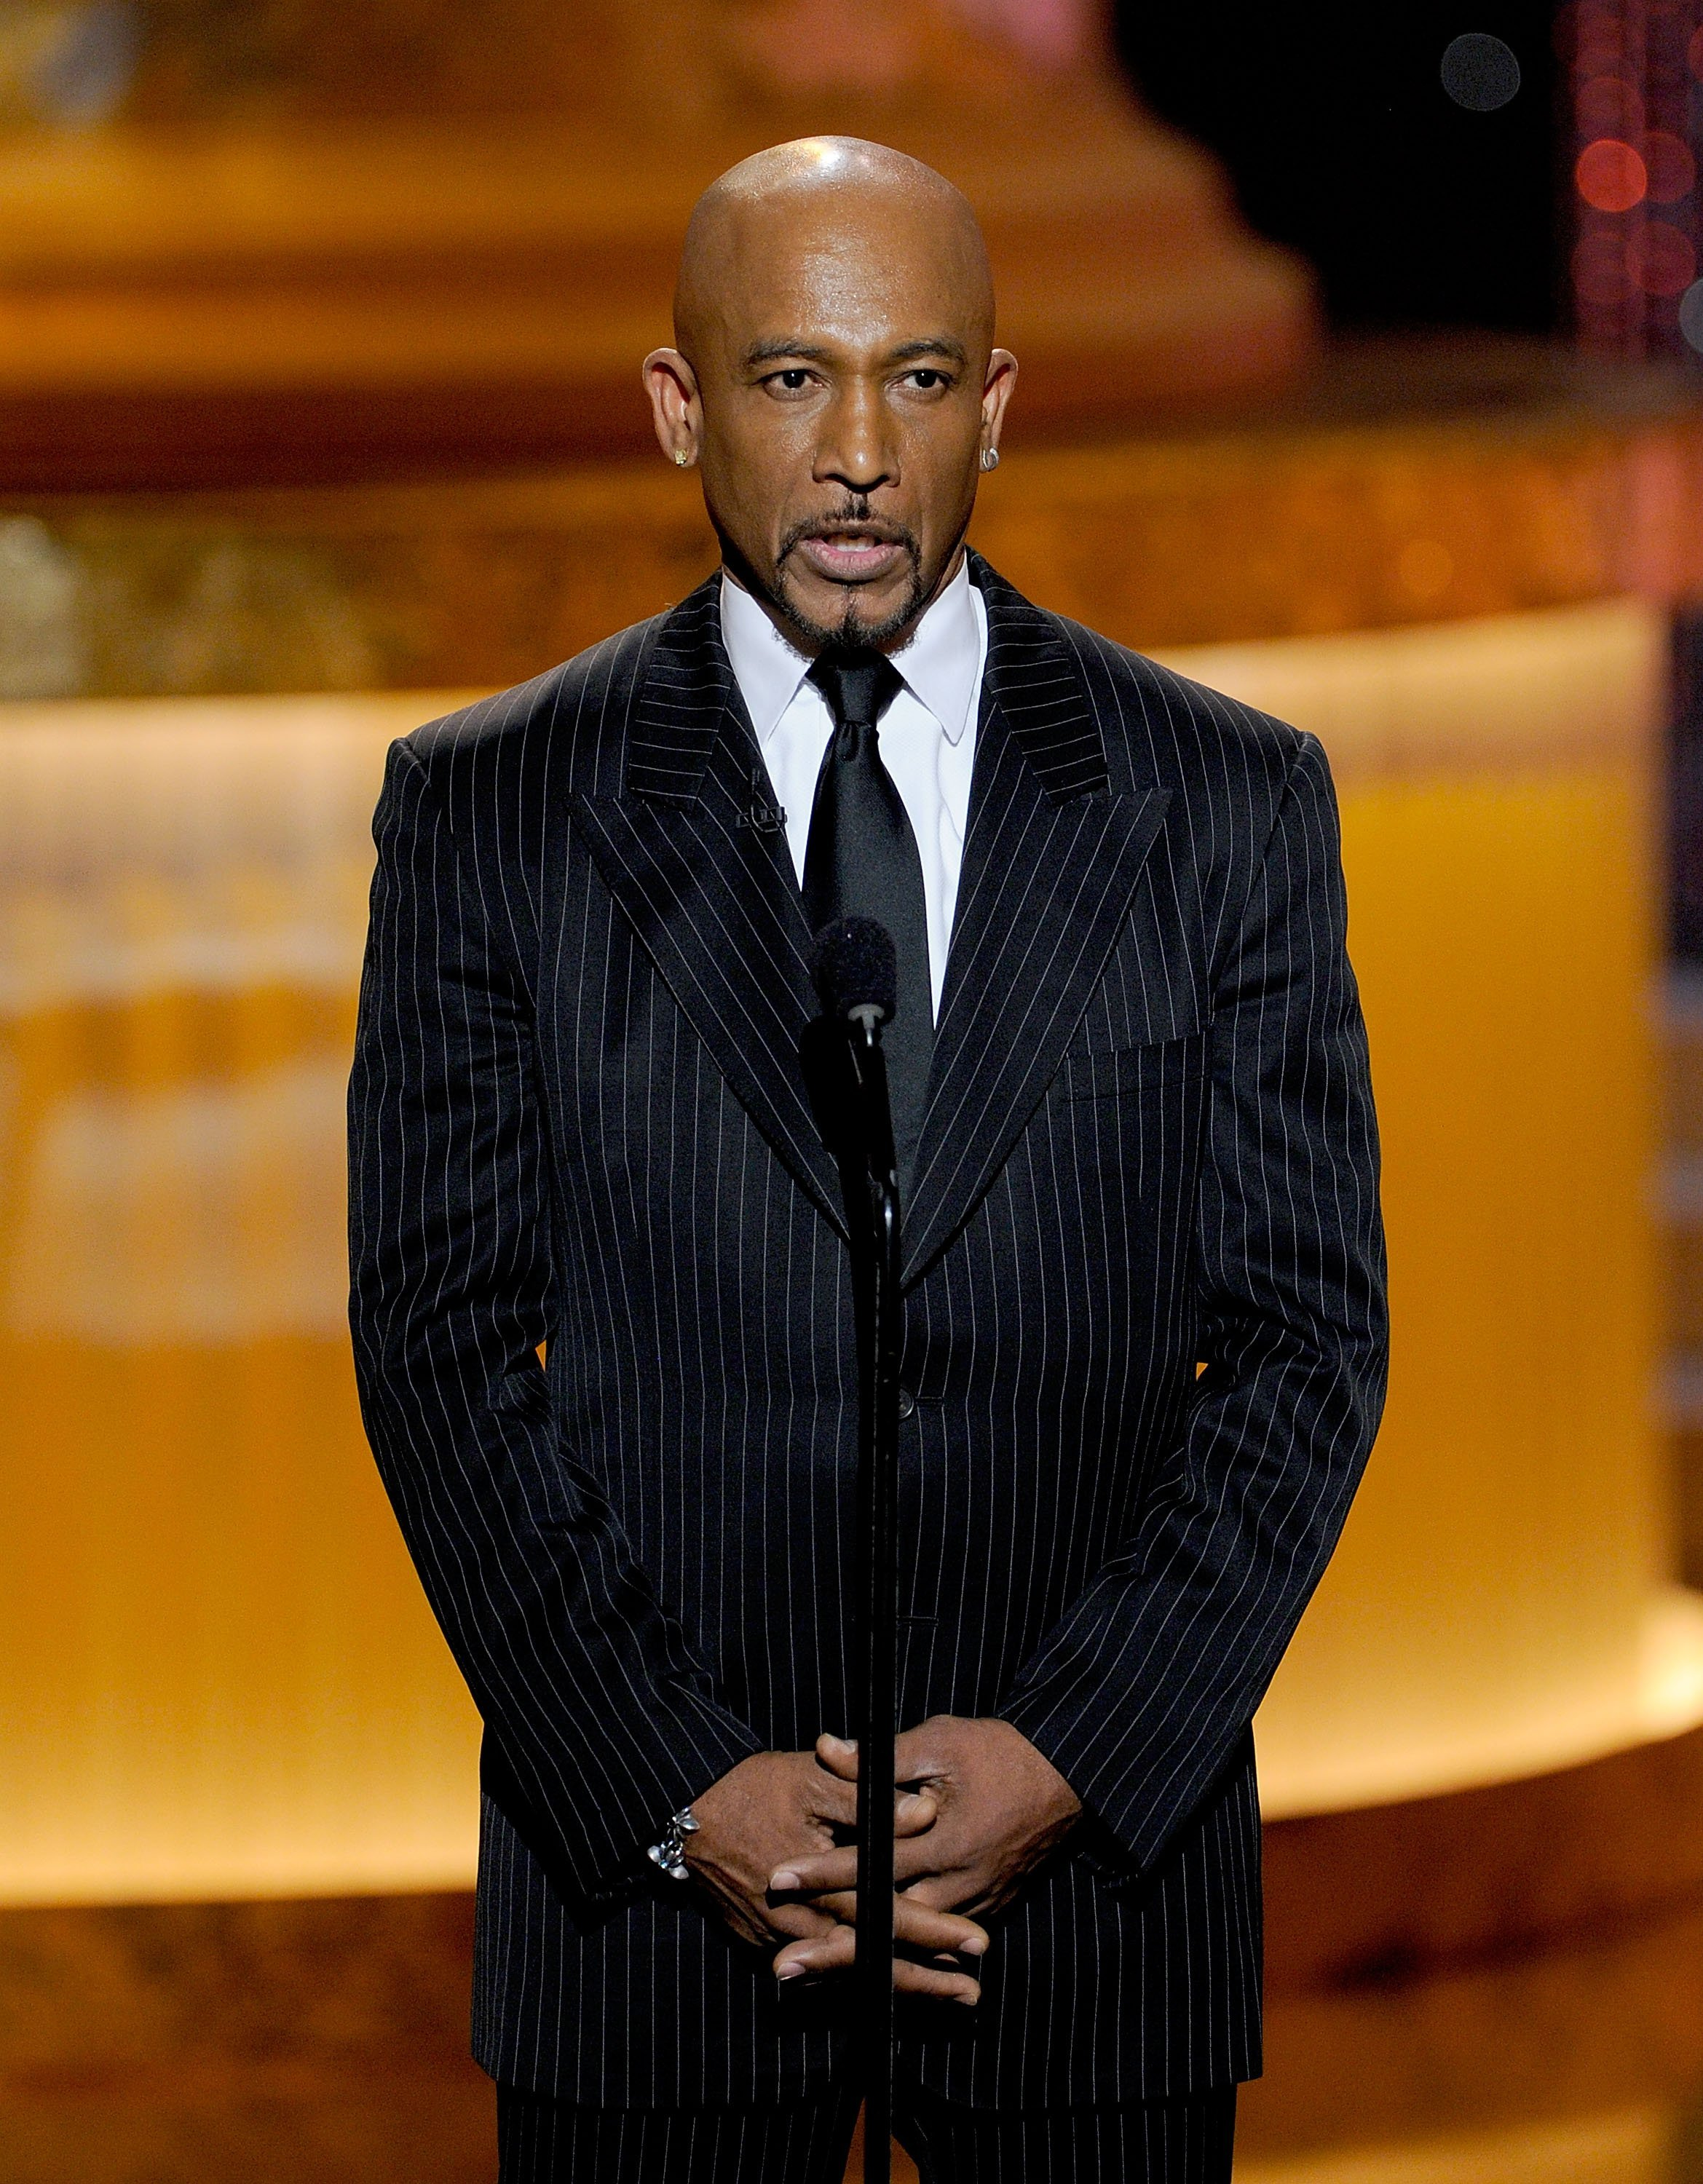 Montel Williams on June 27, 2010 in Las Vegas, Nevada | Photo: Getty Images